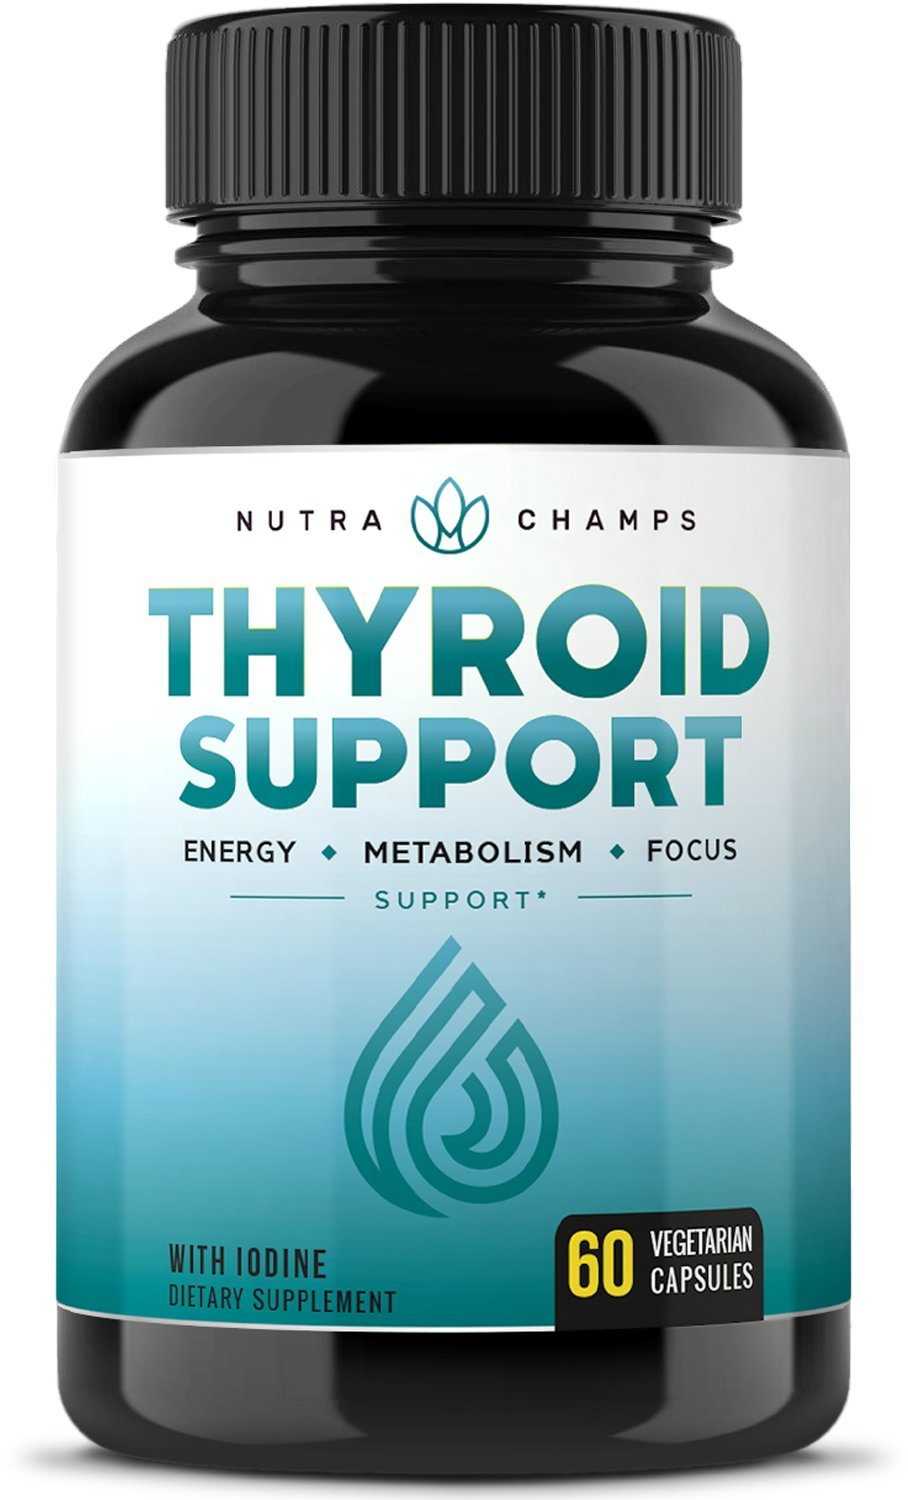 Product thumbnail for Nutra Champs Thyroid Support Selenium Supplement